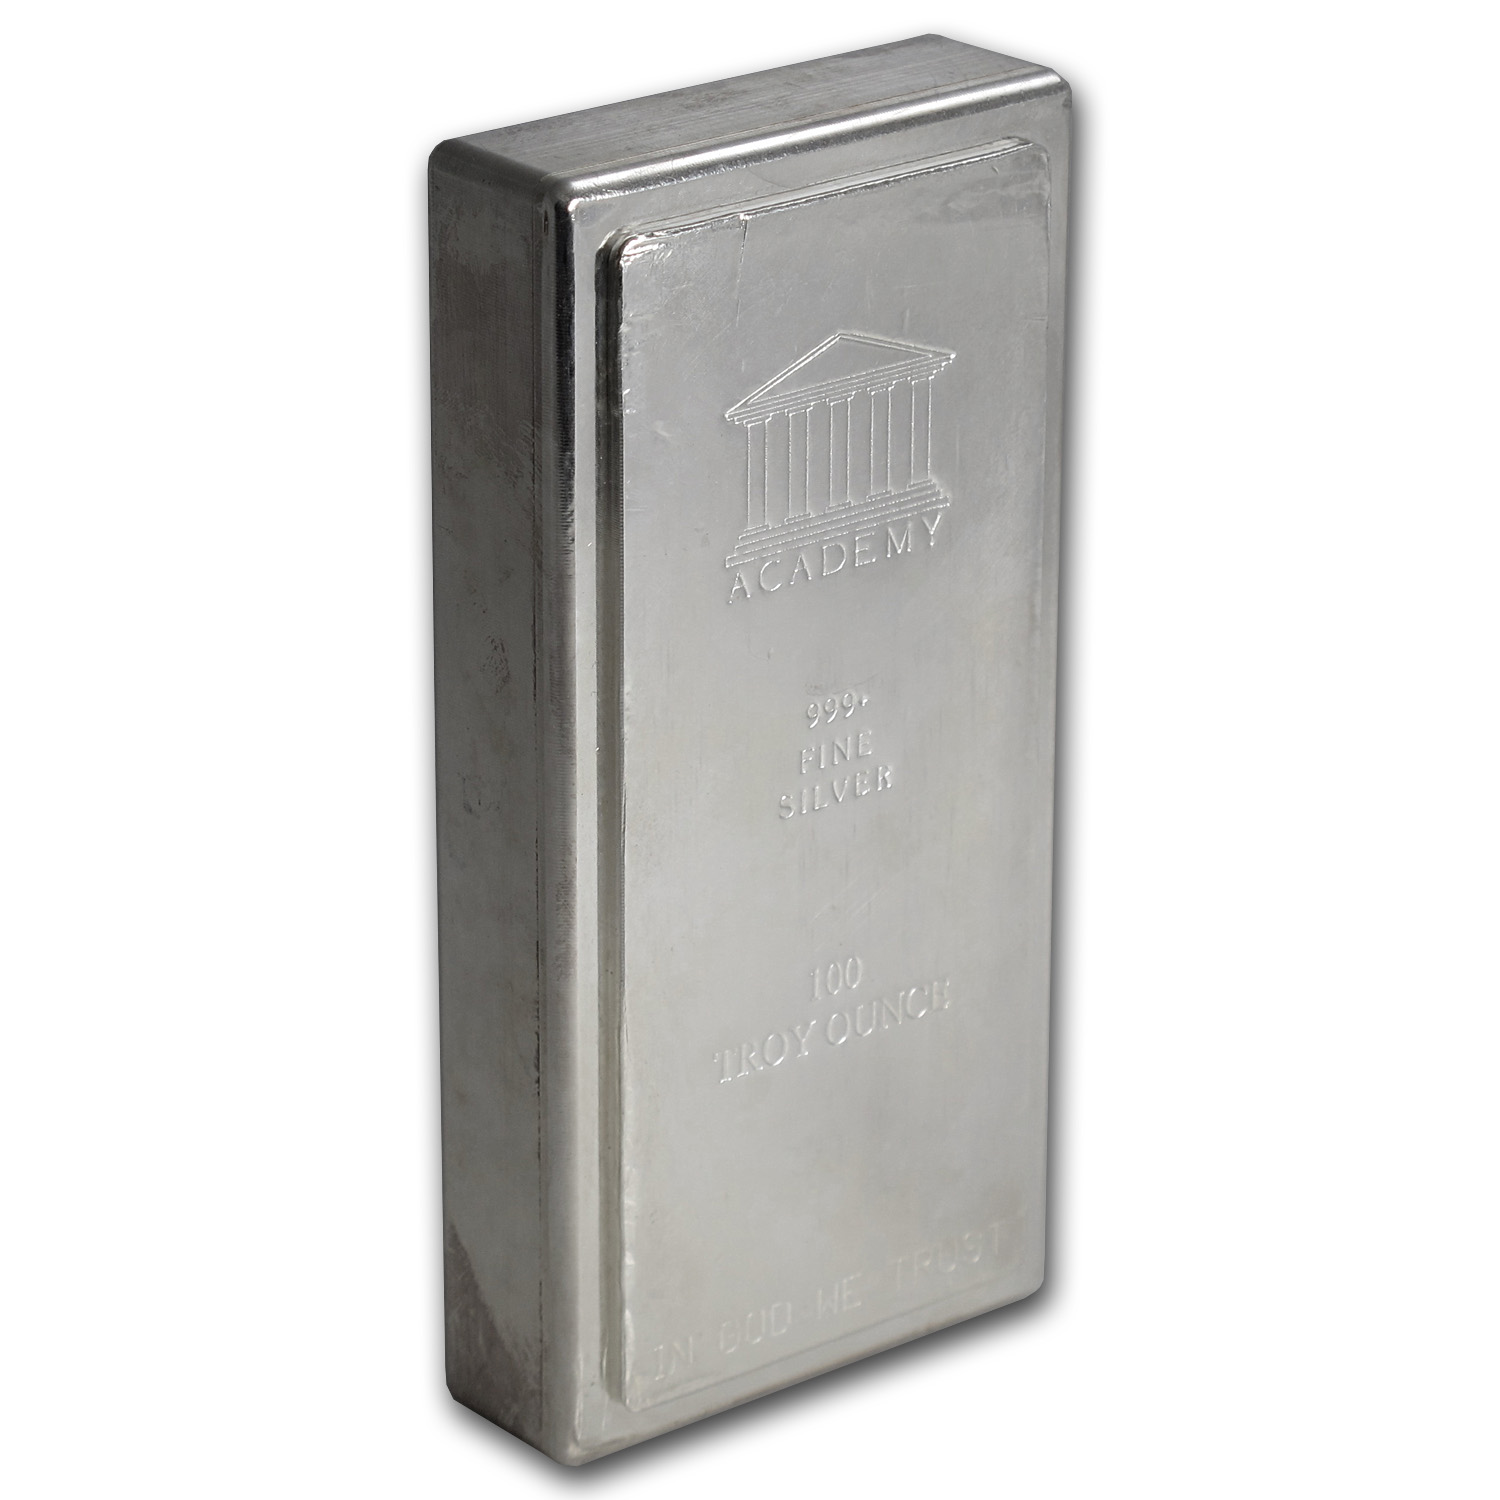 100 oz Silver Bar - Academy (Stackable)